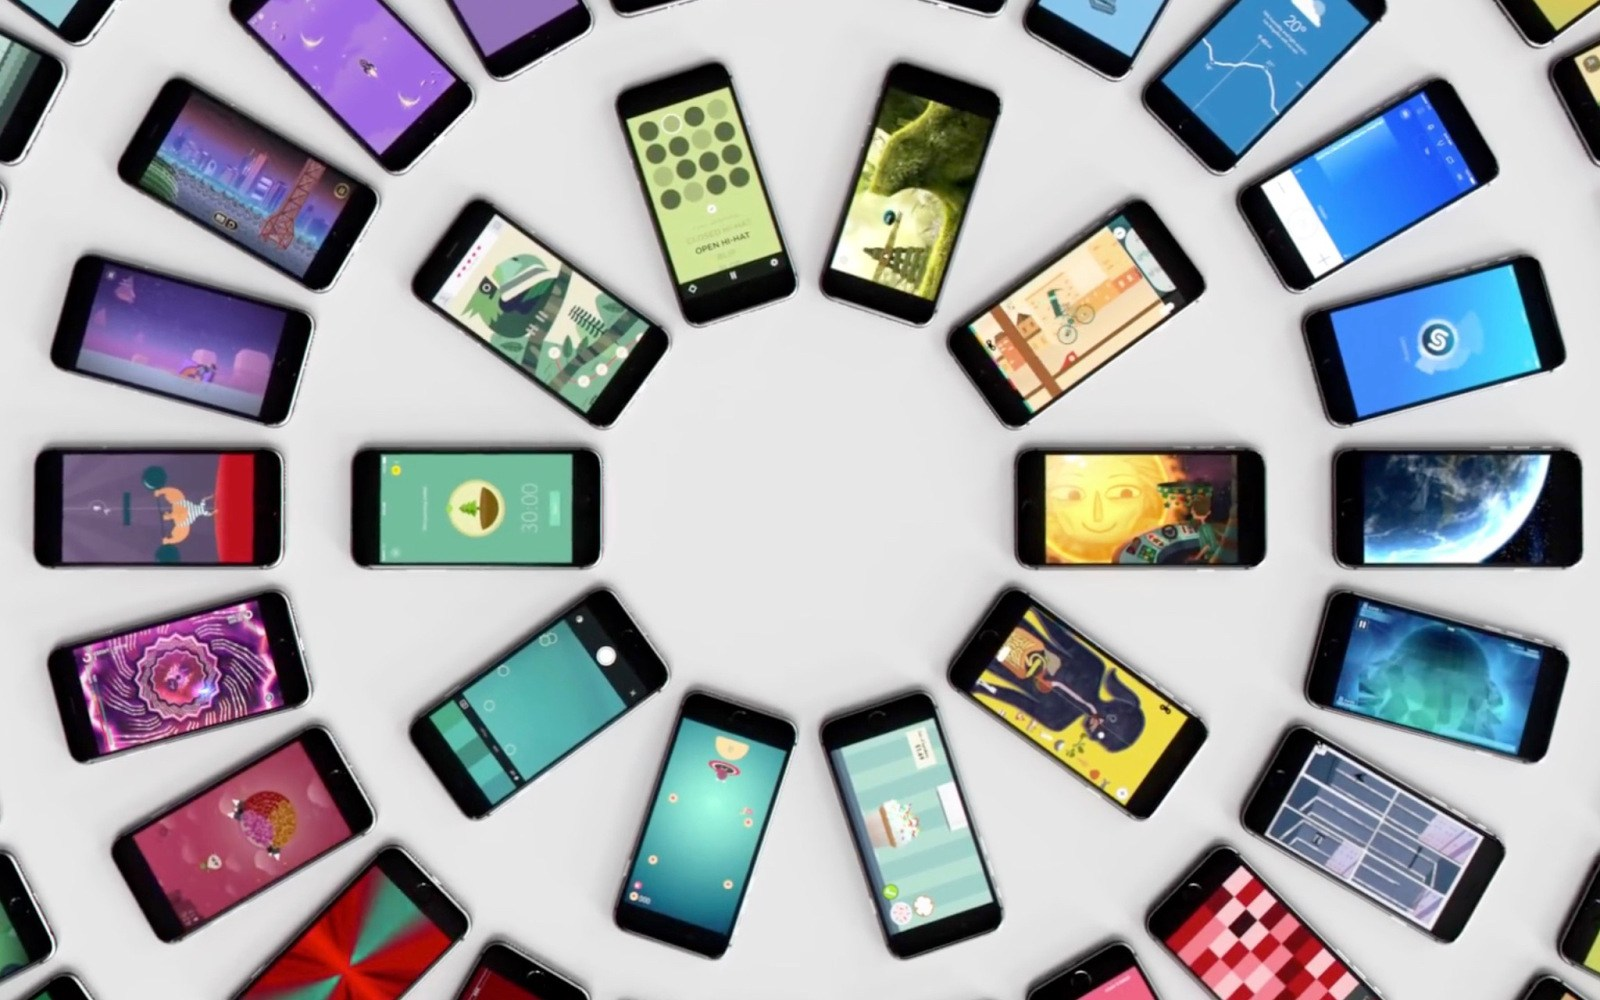 Here's which smartphone apps have the most usage on iOS & Android